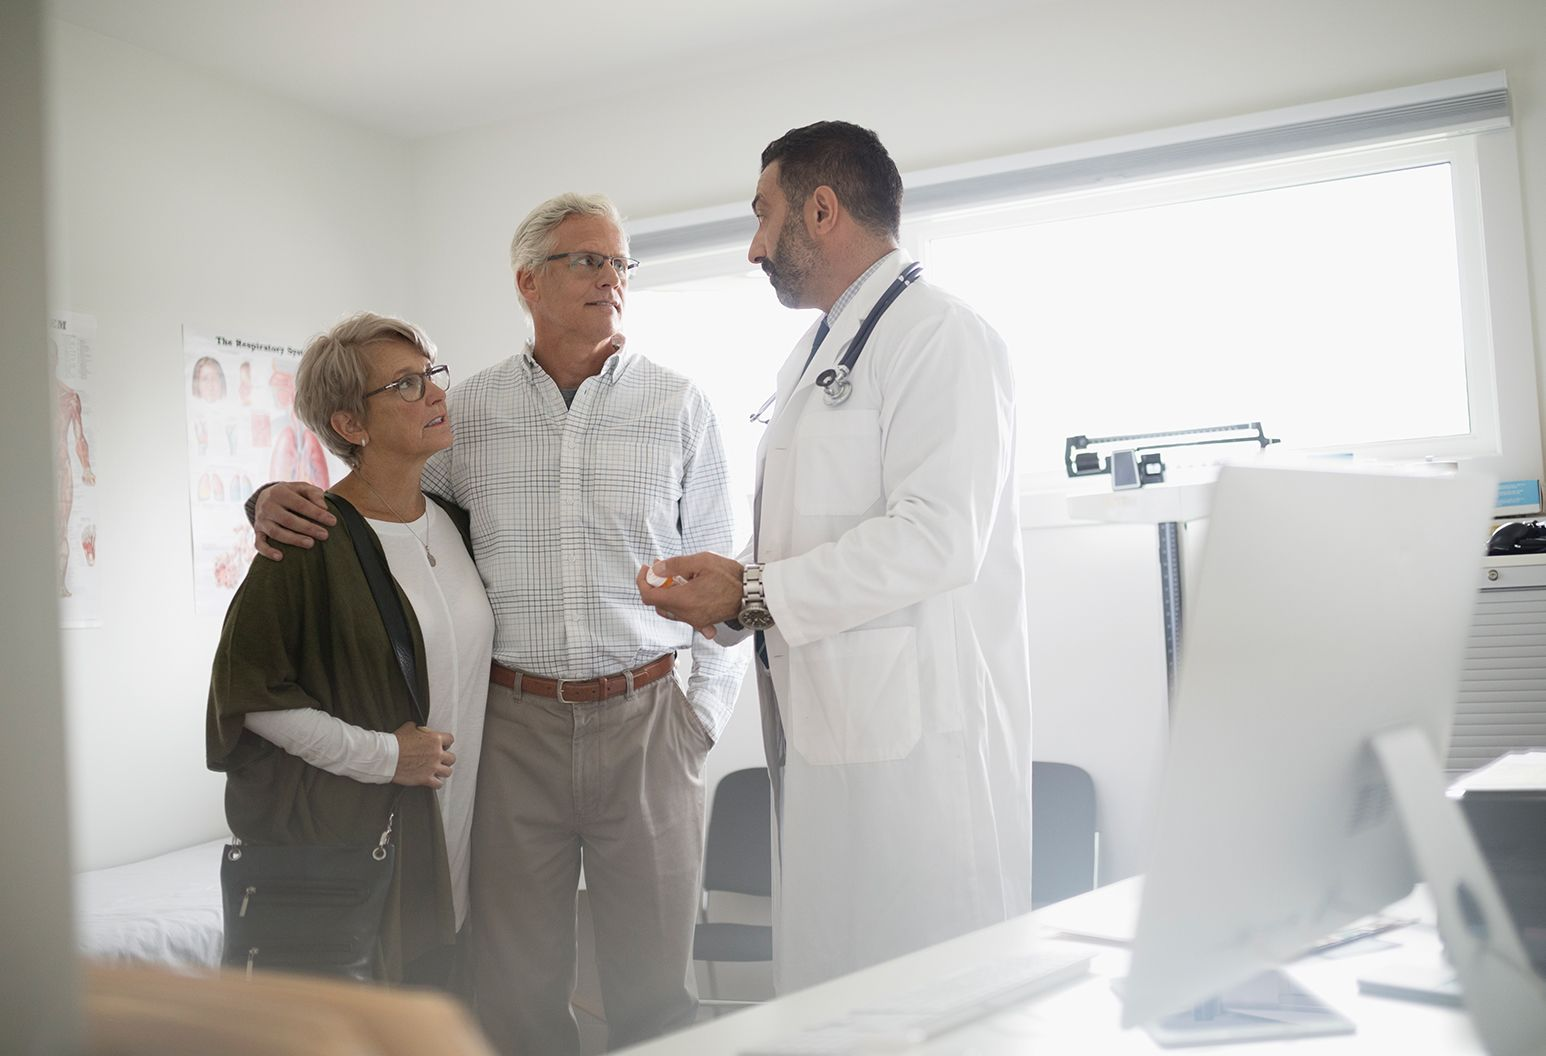 A doctor stands in his office consulting an elderly couple in glasses. The elderly man has his arm around an elderly woman as they hear the doctor discuss something with them.